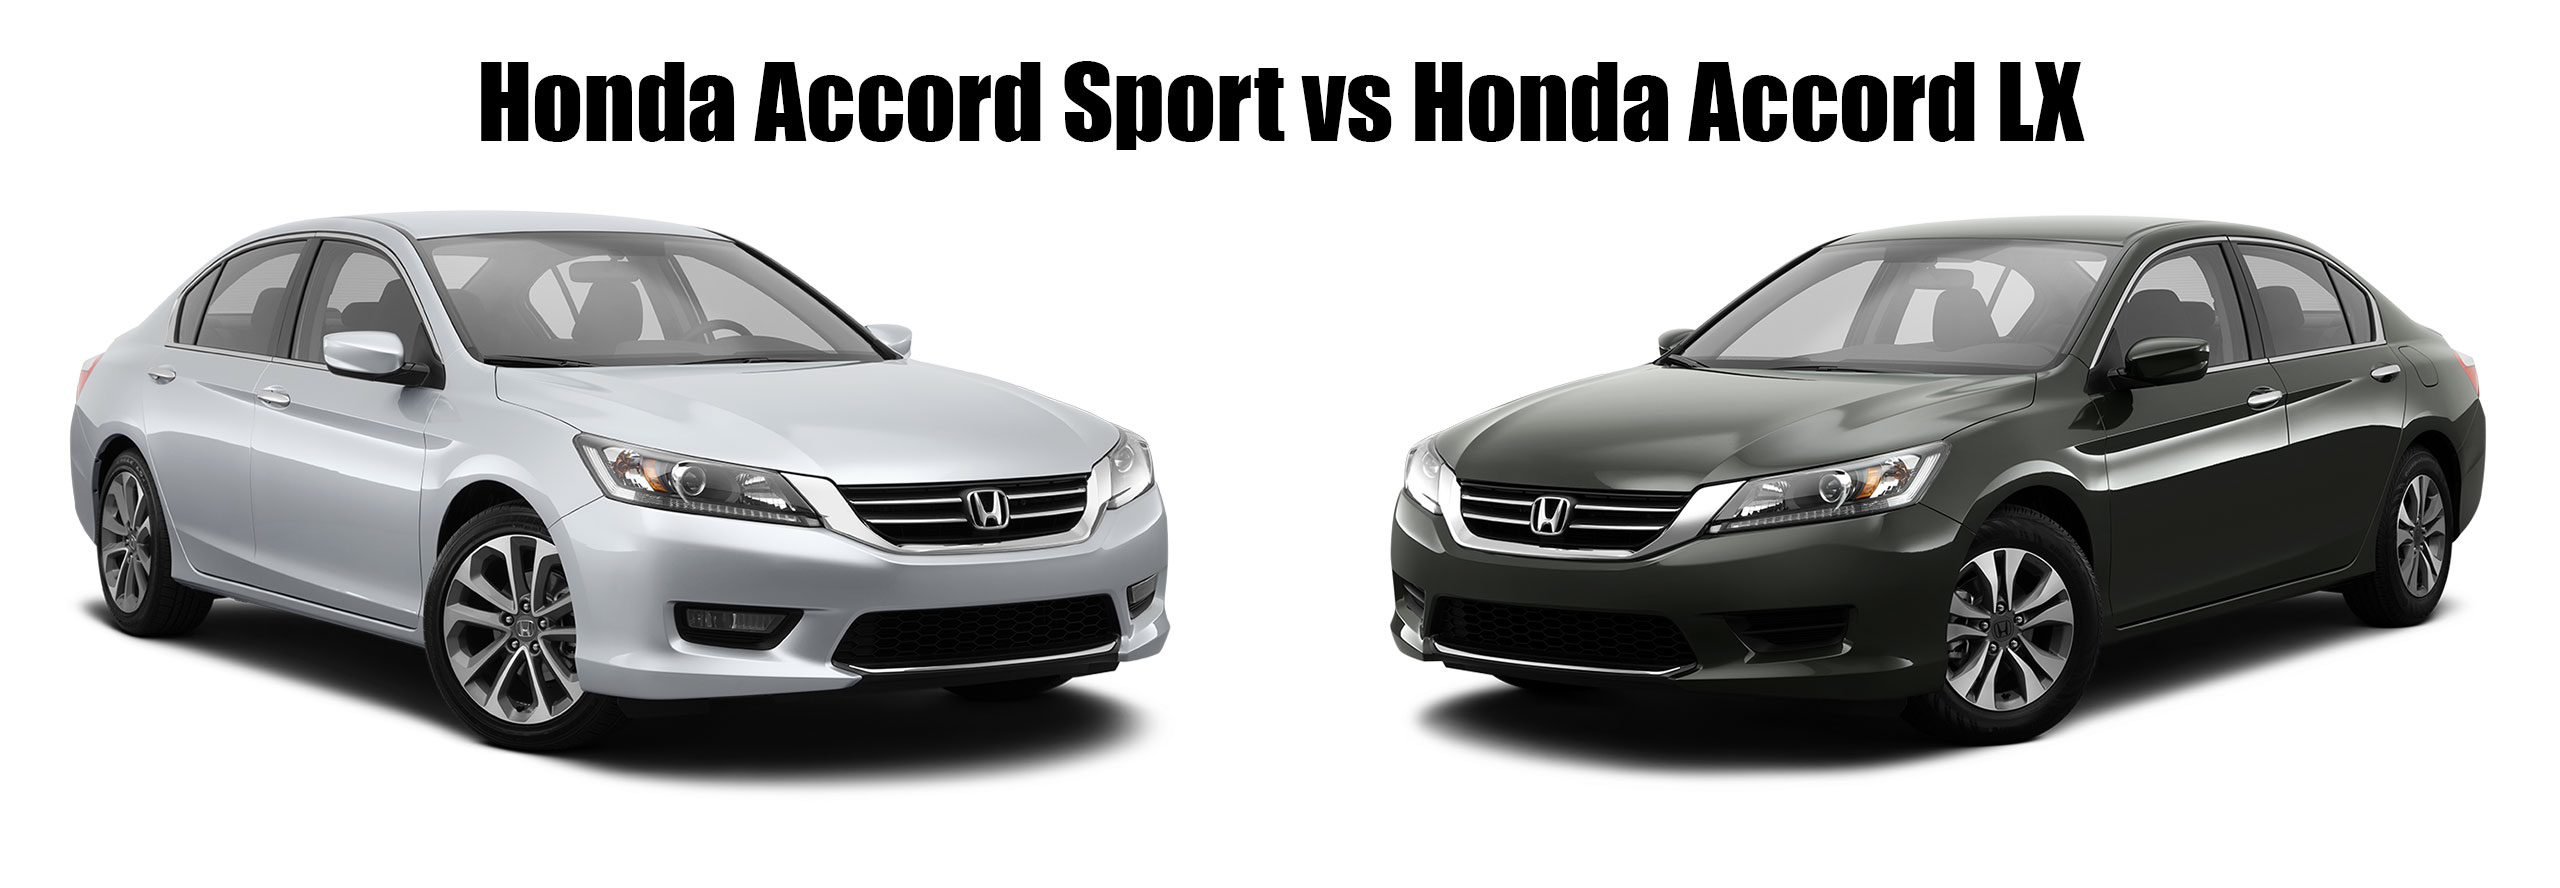 honda accord sport vs honda accord lx brannon honda. Black Bedroom Furniture Sets. Home Design Ideas